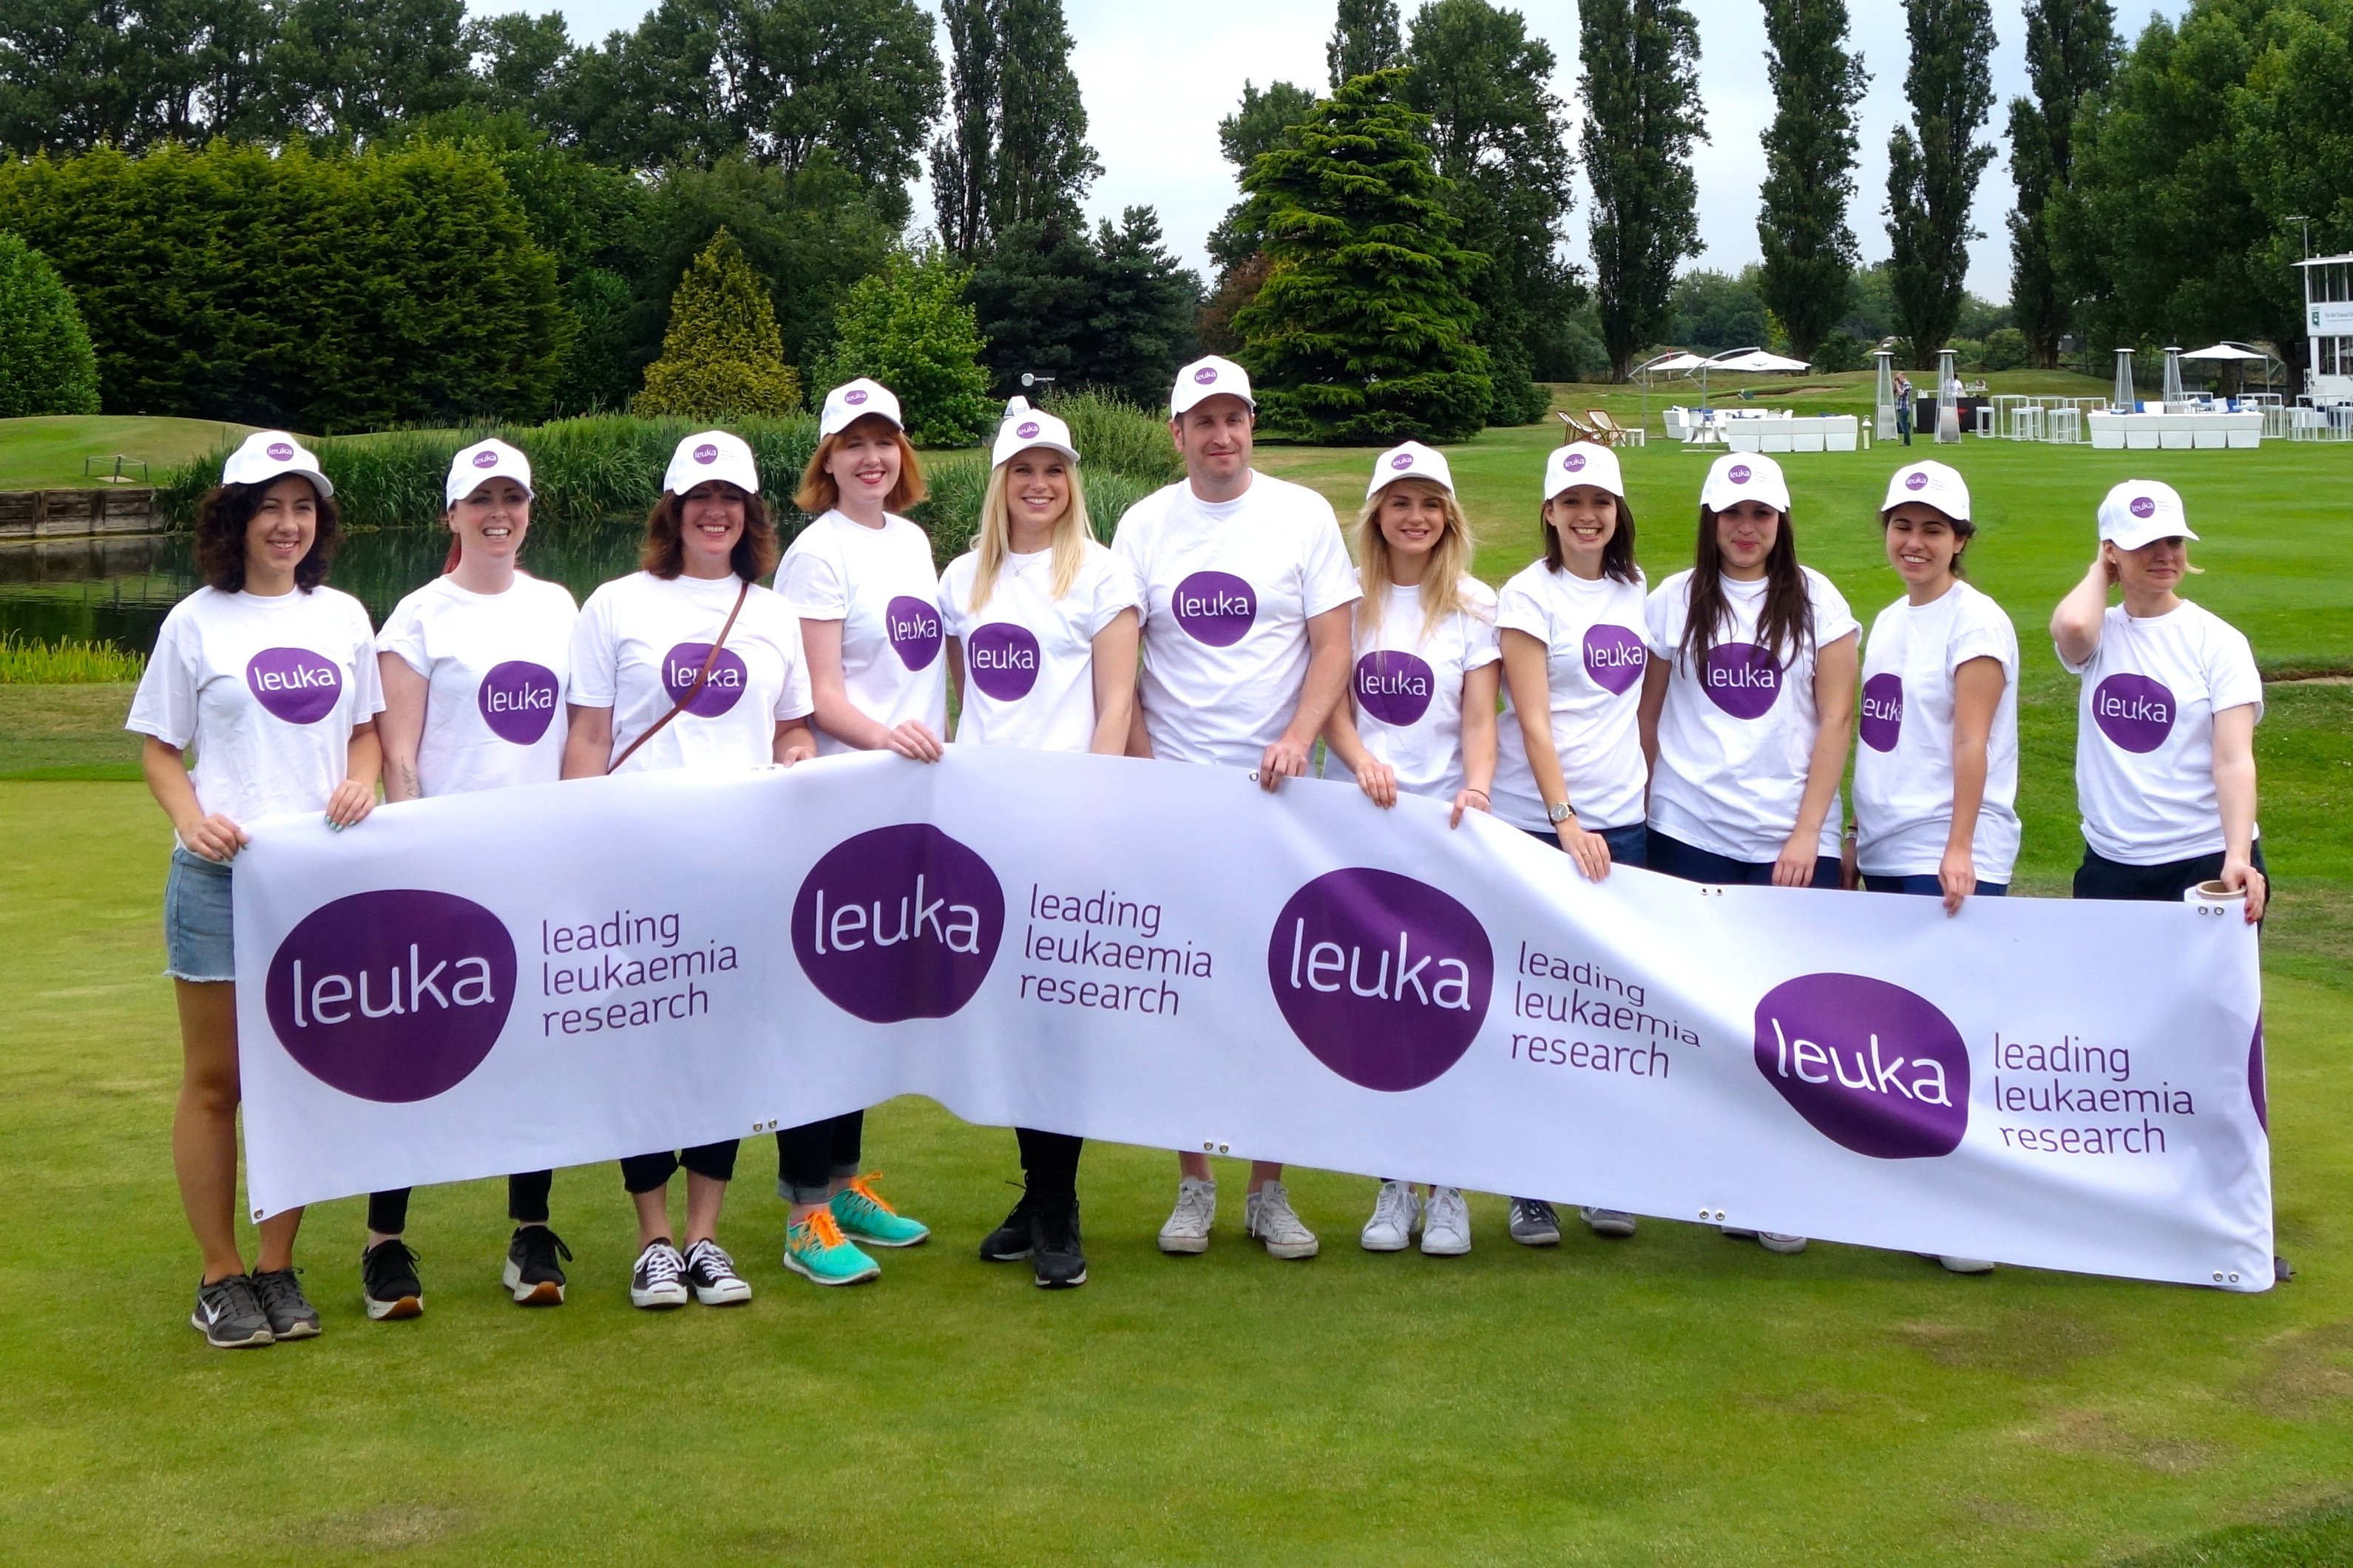 Leuka volunteers at the Mini Masters golf fundraiser for leukaemia research